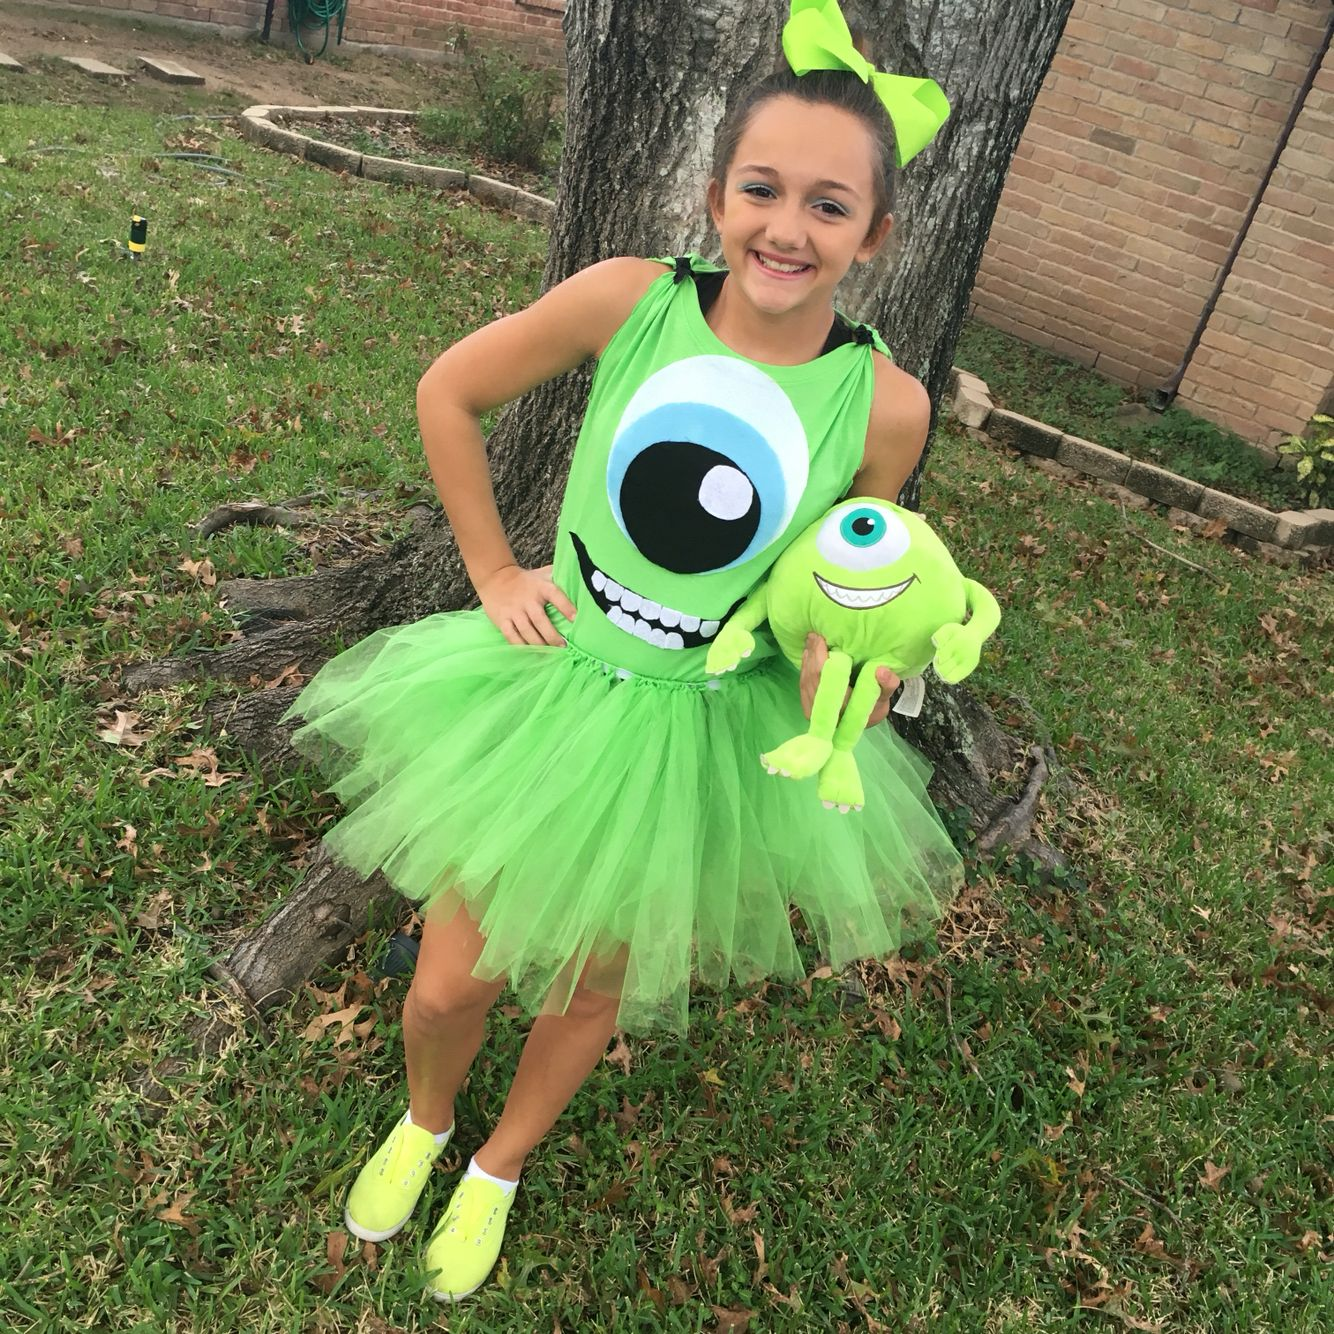 Our own Monsters Inc costume for Halloween  | תחפושות